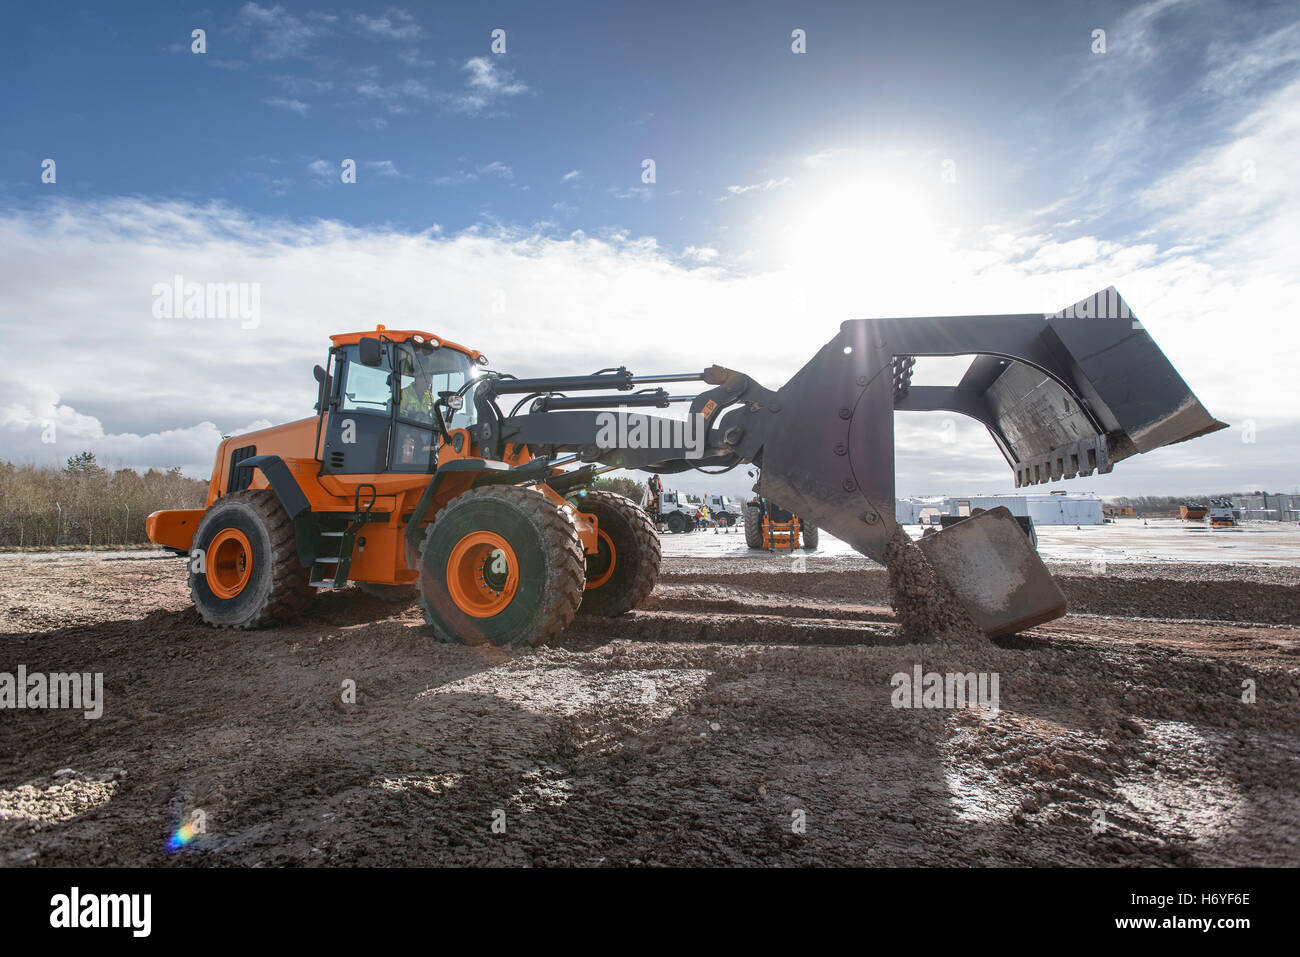 Emergency Response Team digger lifting blocks in training exercise  Image downloaded by   at 4:22 on the 14/06/15 - Stock Image